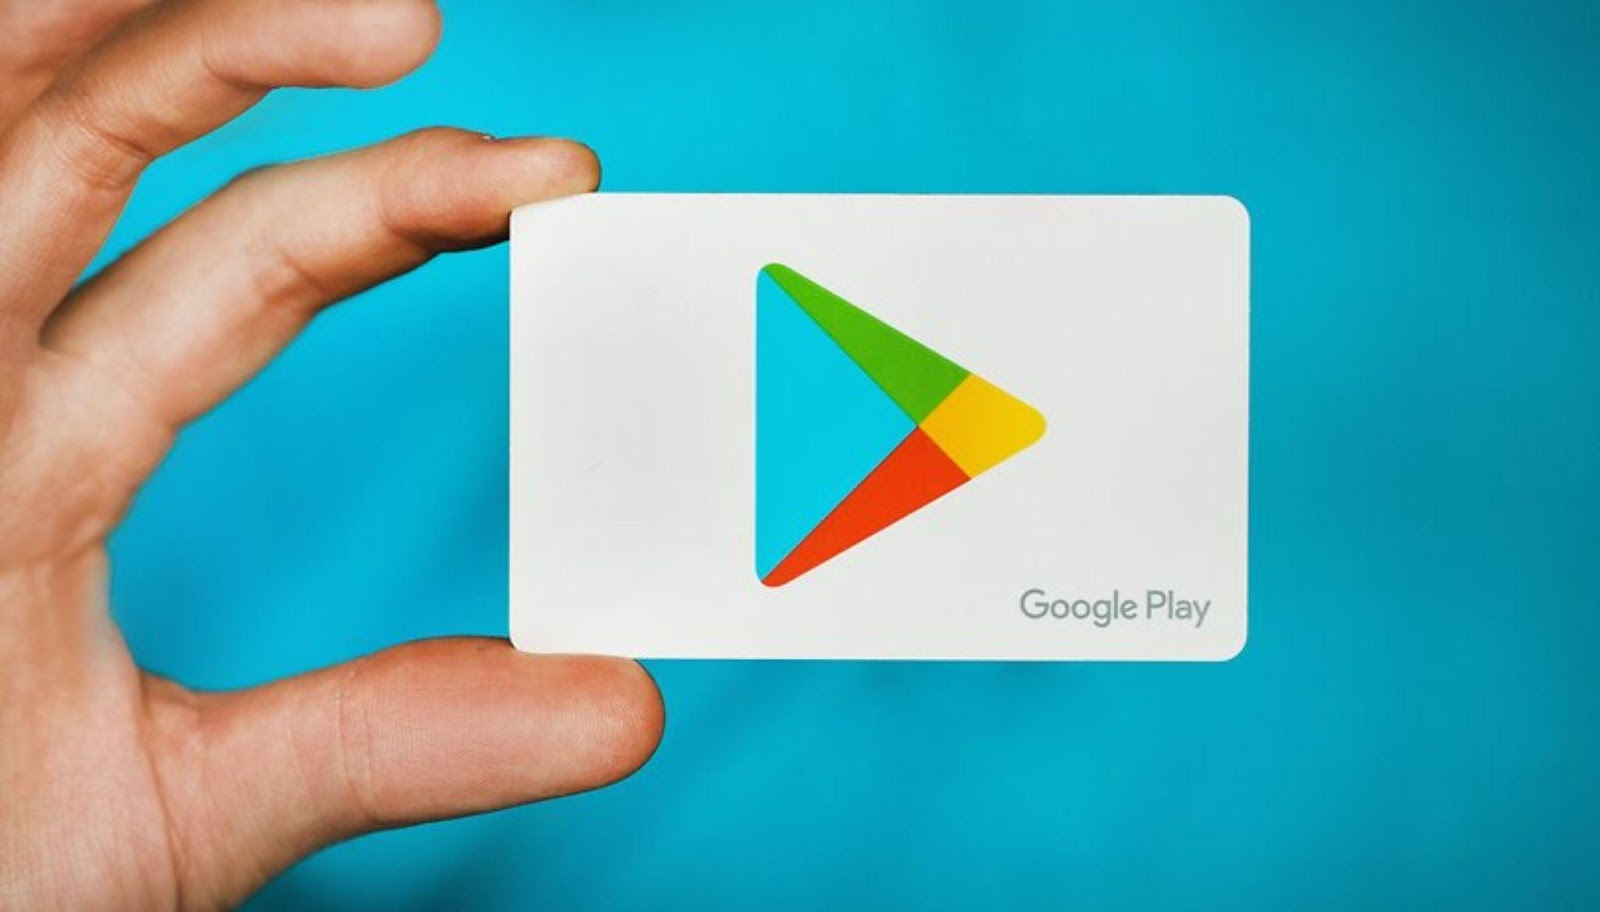 Play Store is a combination of Android Market, Google eBookstore and Google Music